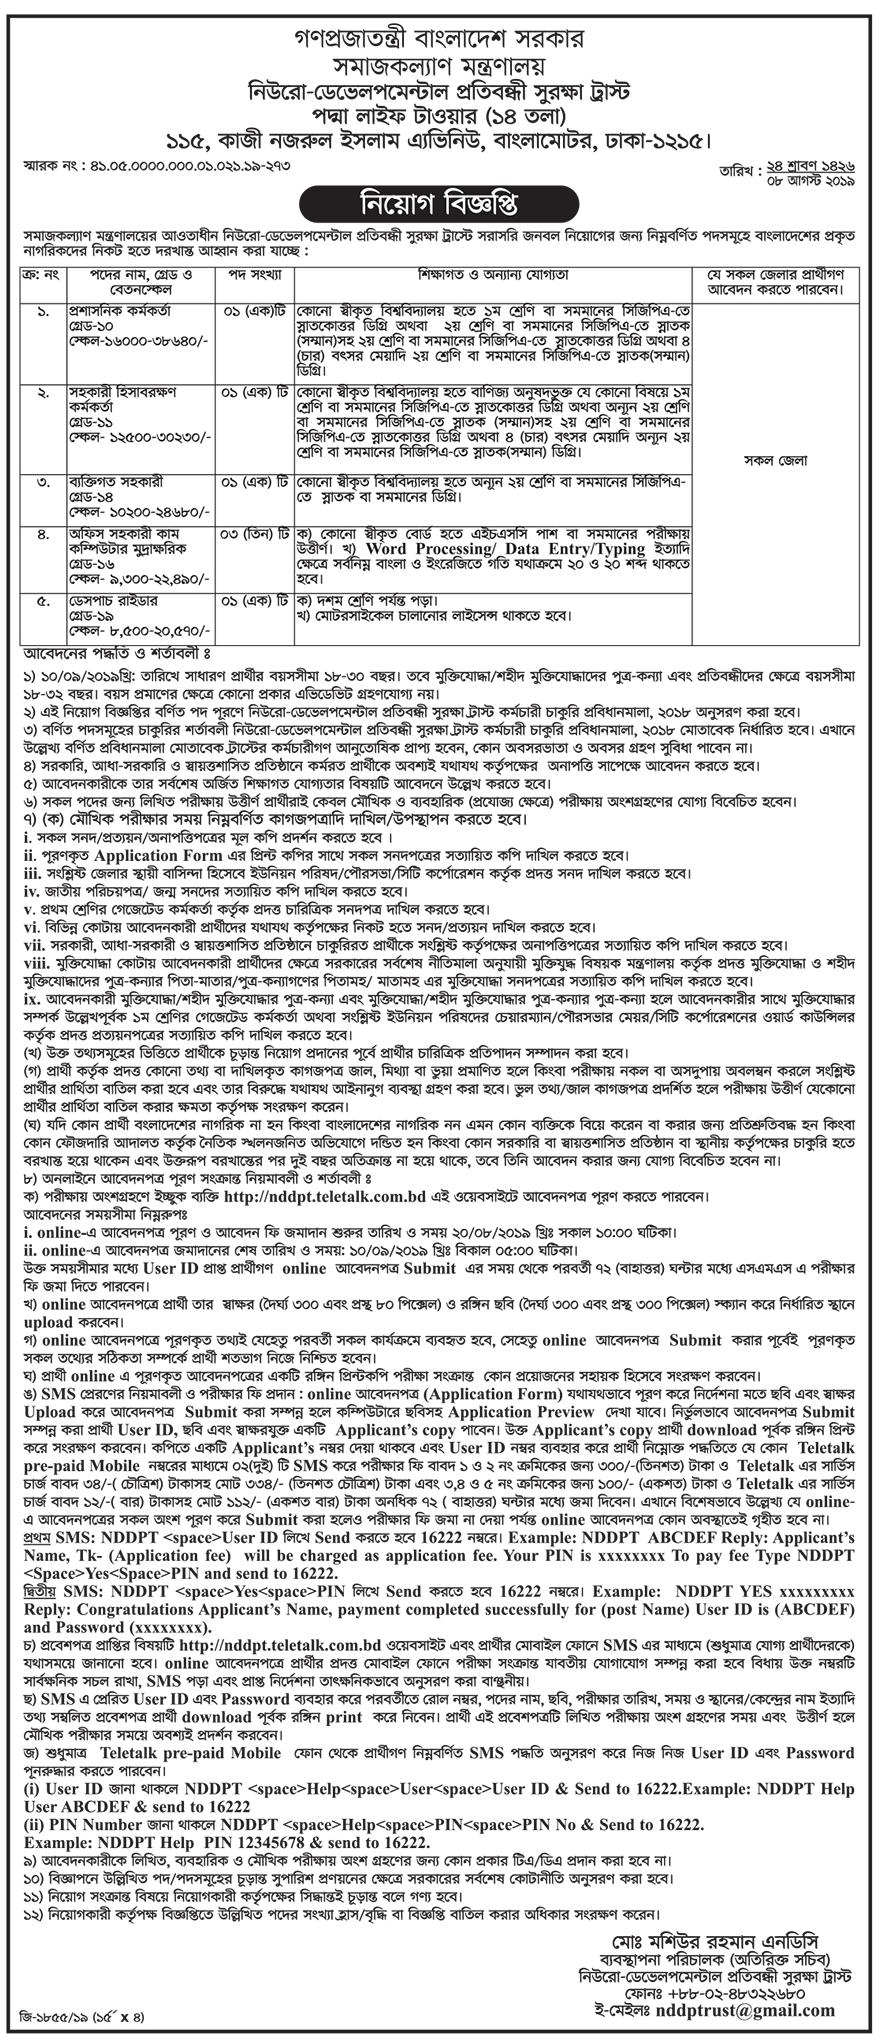 NDDPT Job Circular Apply 2019